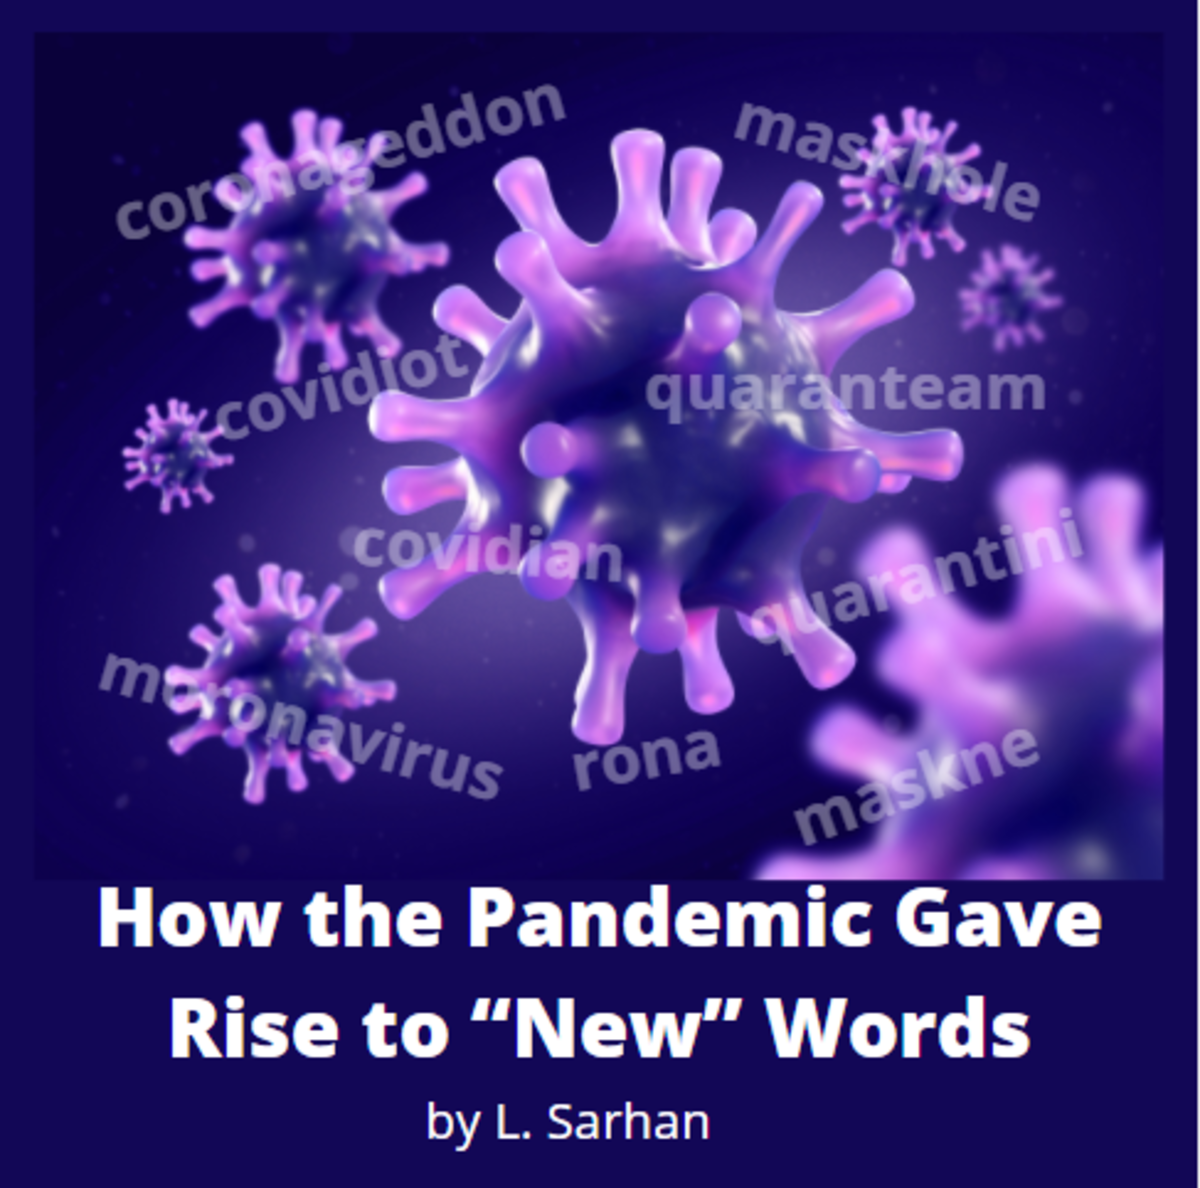 "How the Coronavirus Pandemic Gave Rise to ""New"" Words"